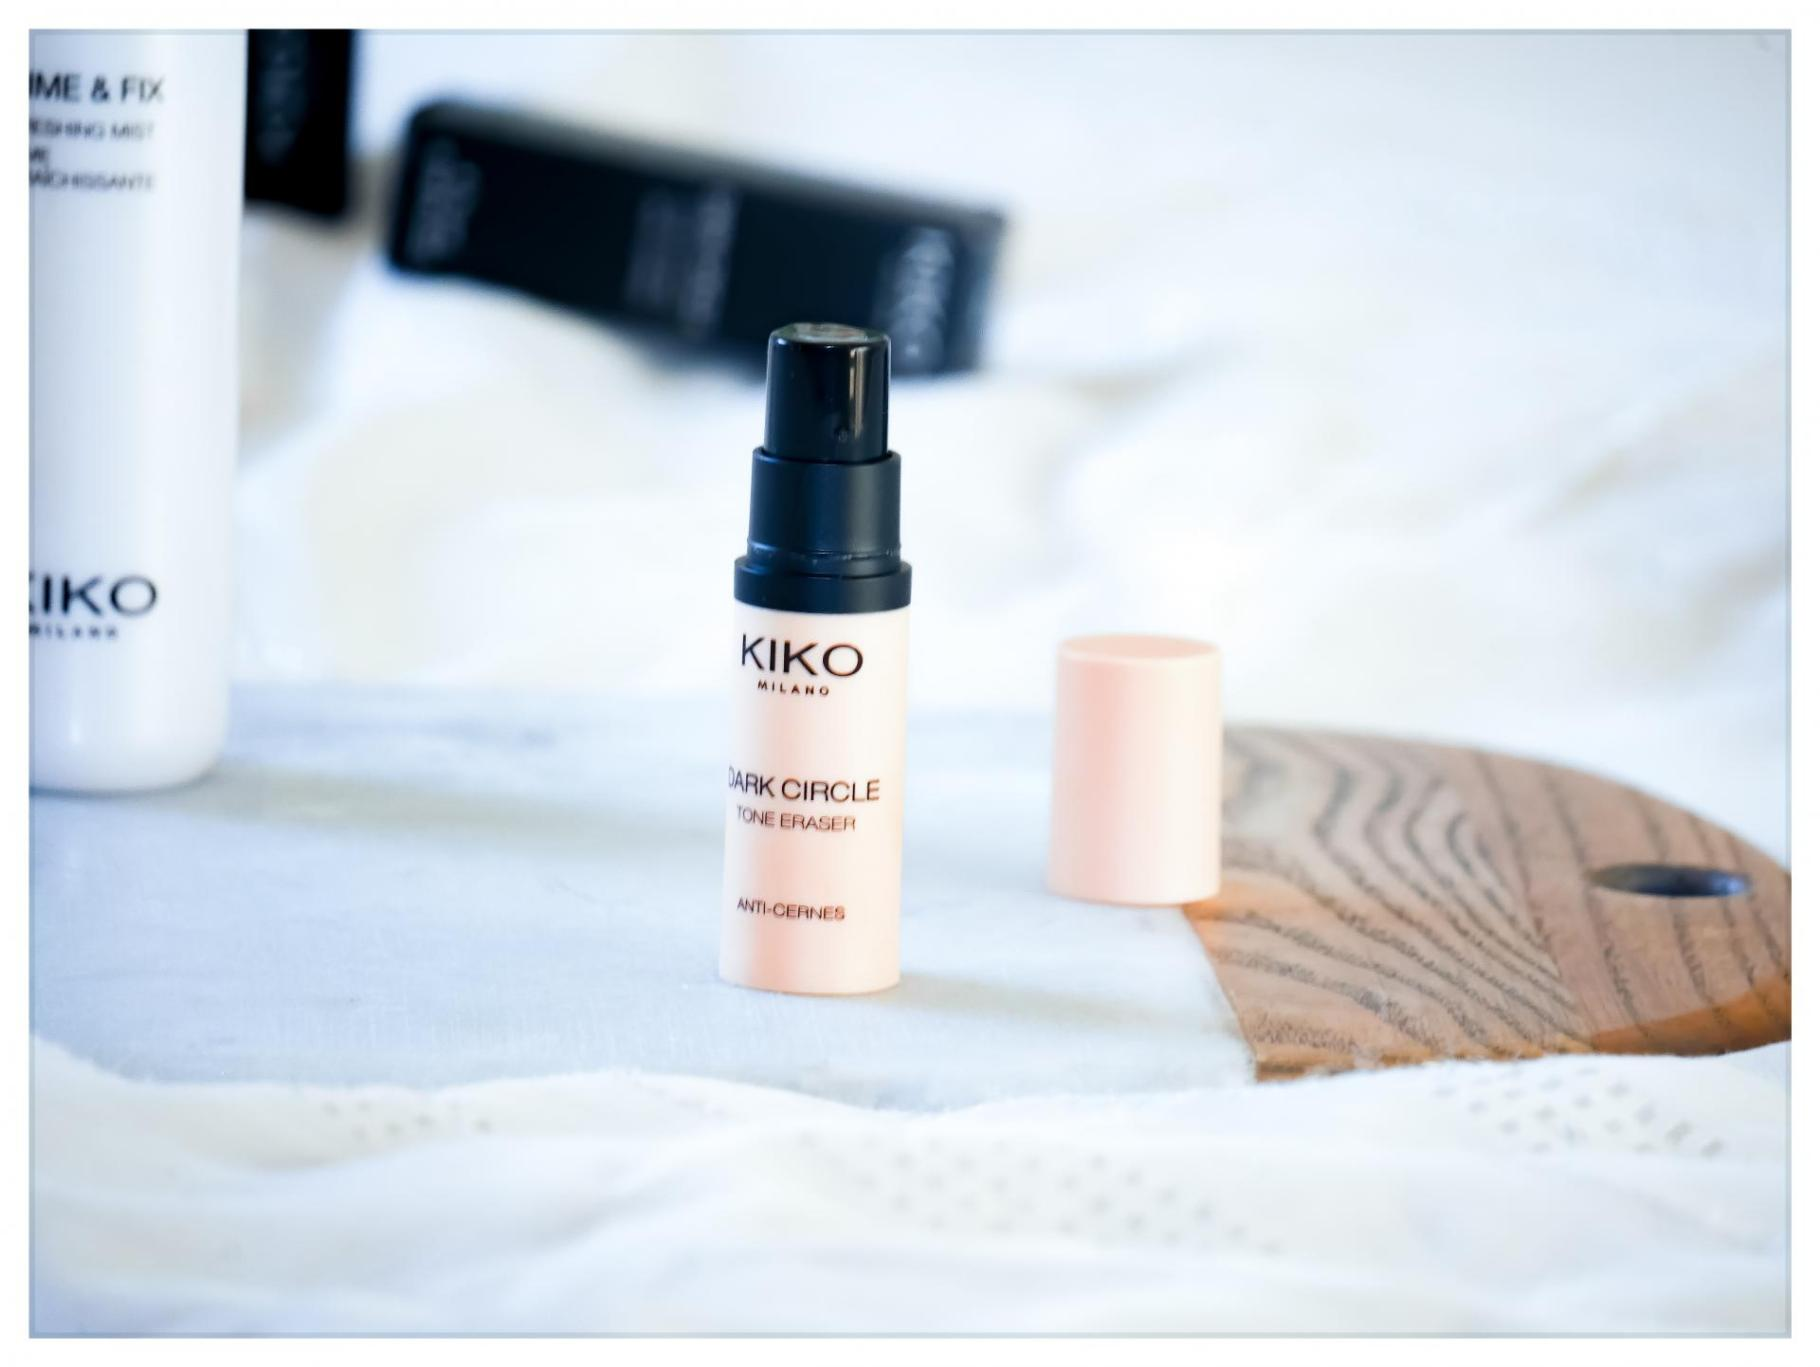 What I bought from KIKO Milano Online| My thoughts on everything I bought - all under £10 including this Dark Circle Eraser Colour Corrector |If you're looking for cruelty free, affordable makeup and beauty, then you'll definitely be interested| www.kittyandb.com #KIKOTrendsetters #colourcorrector #beautyreviews #crueltyfree #beautyblog